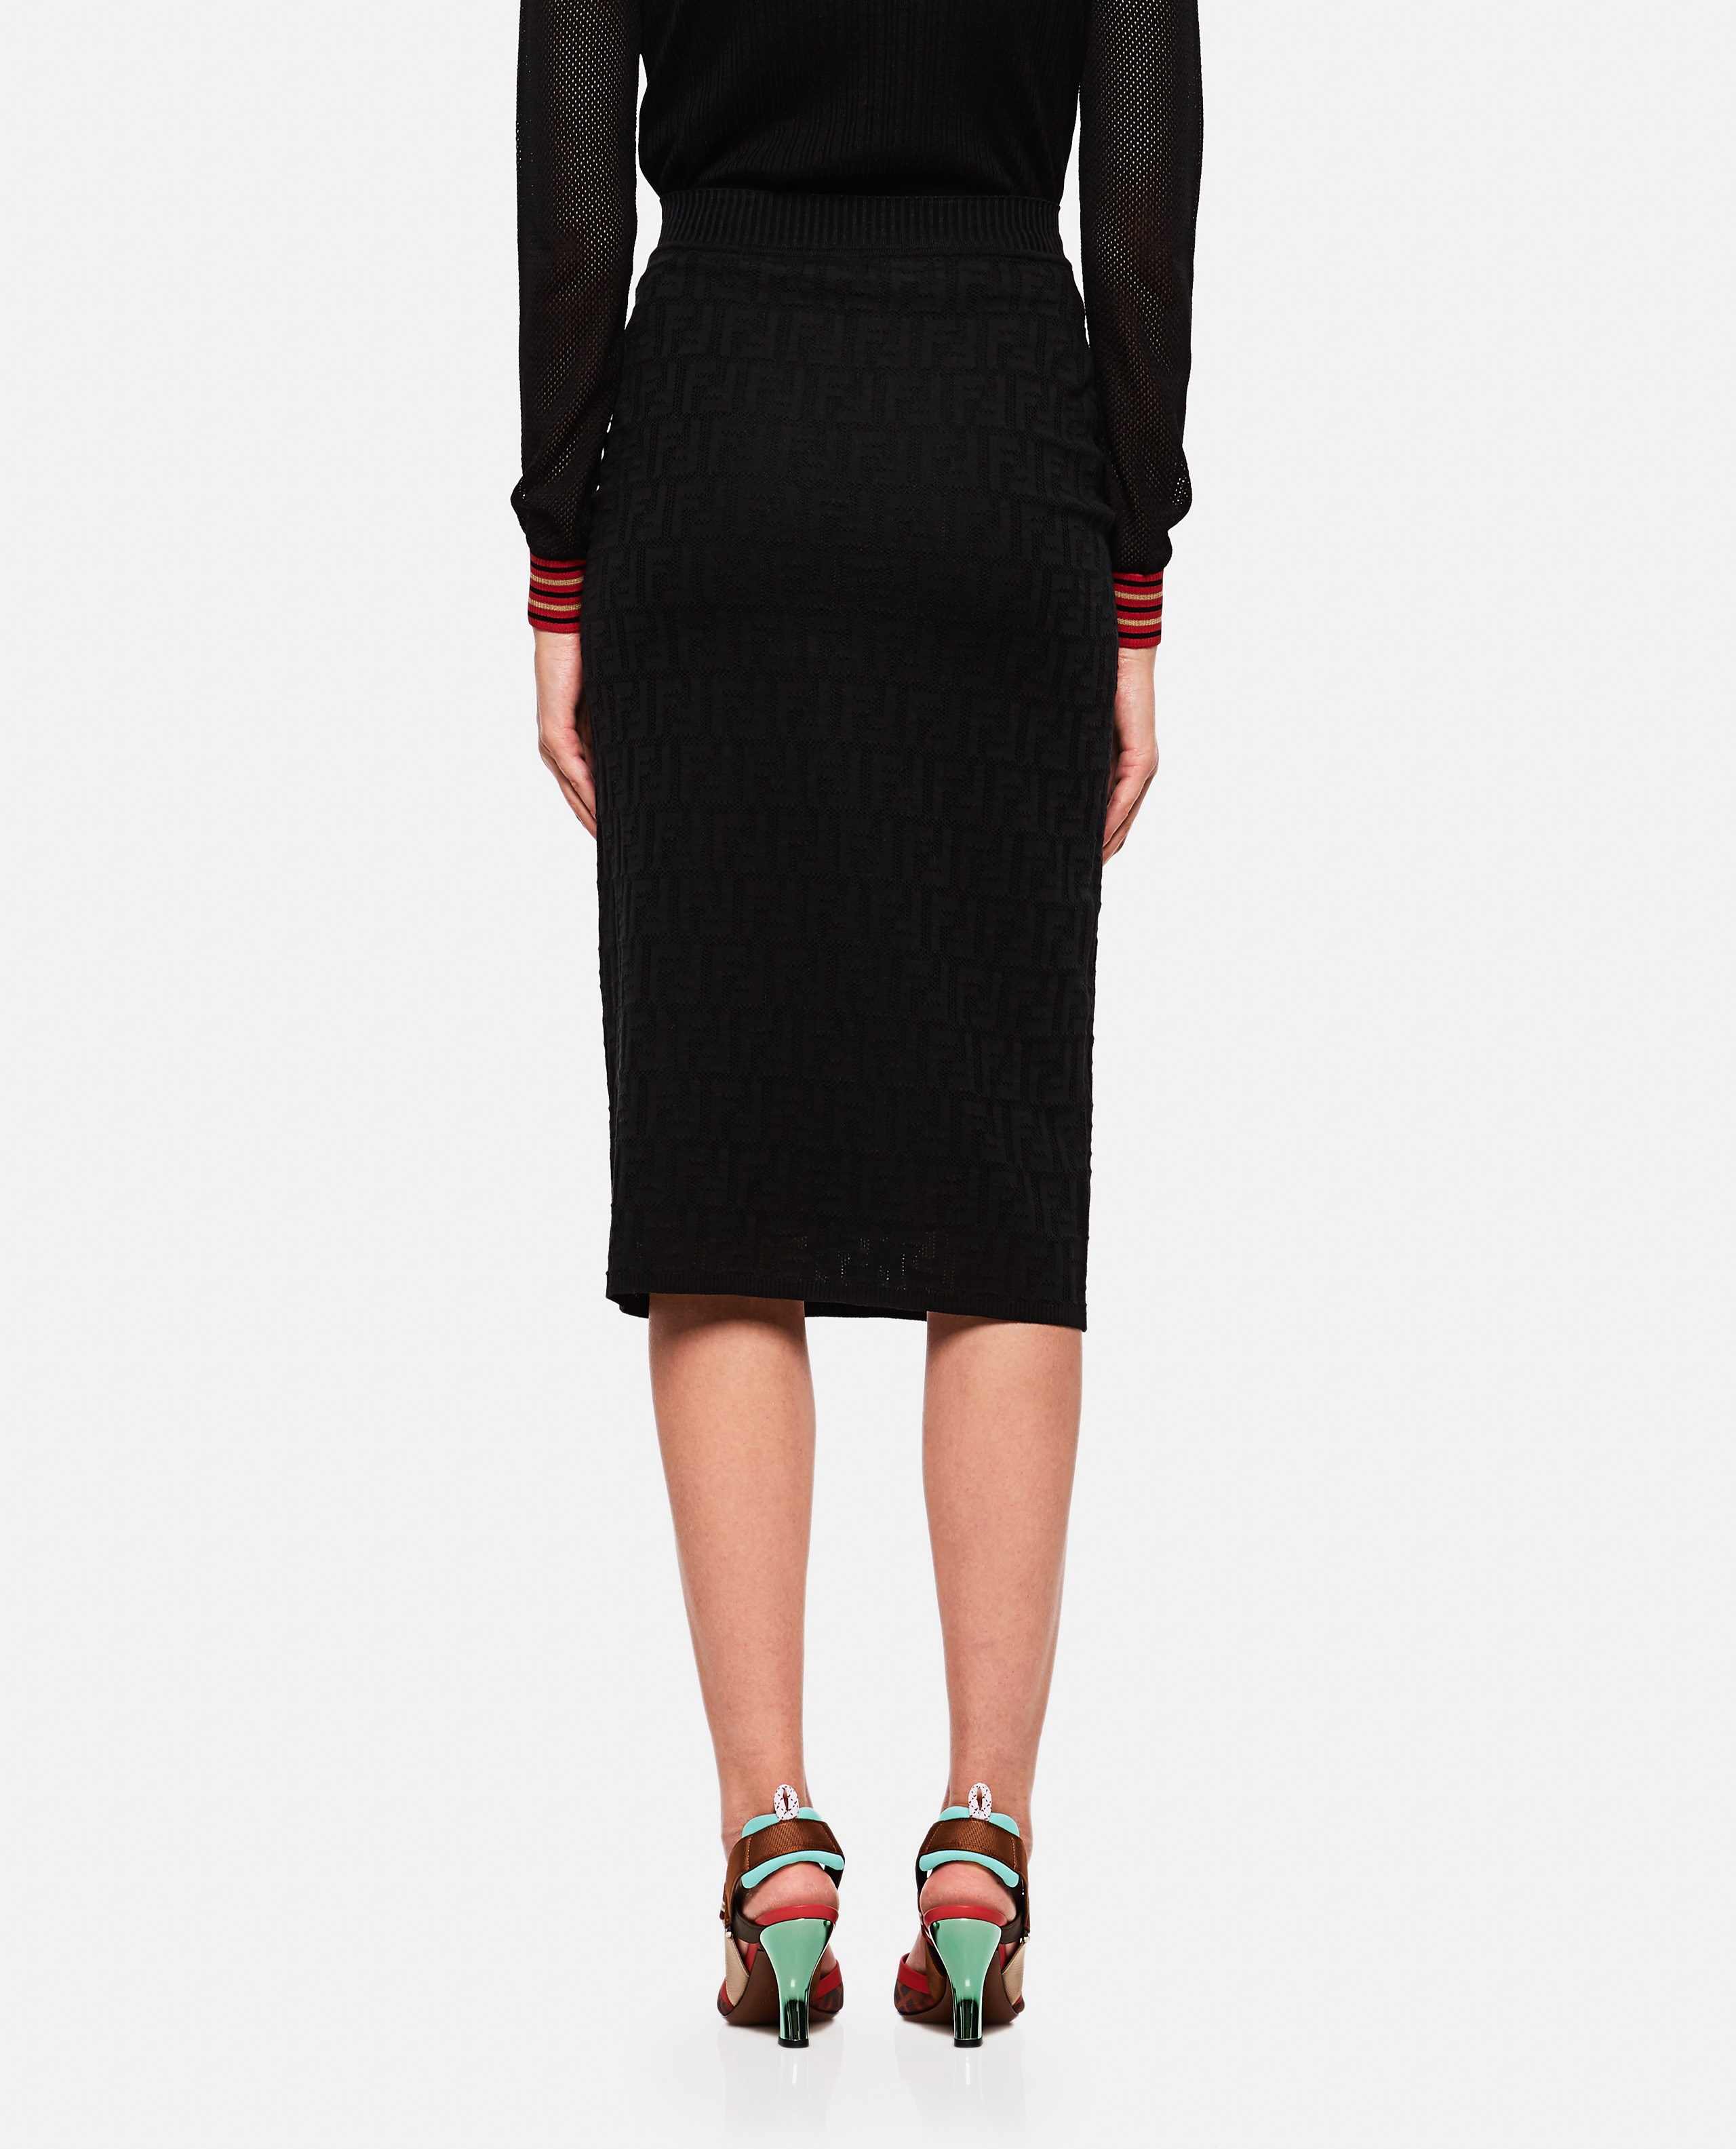 Knitted Skirt With Ff Motif Women Fendi 000190250028262 3